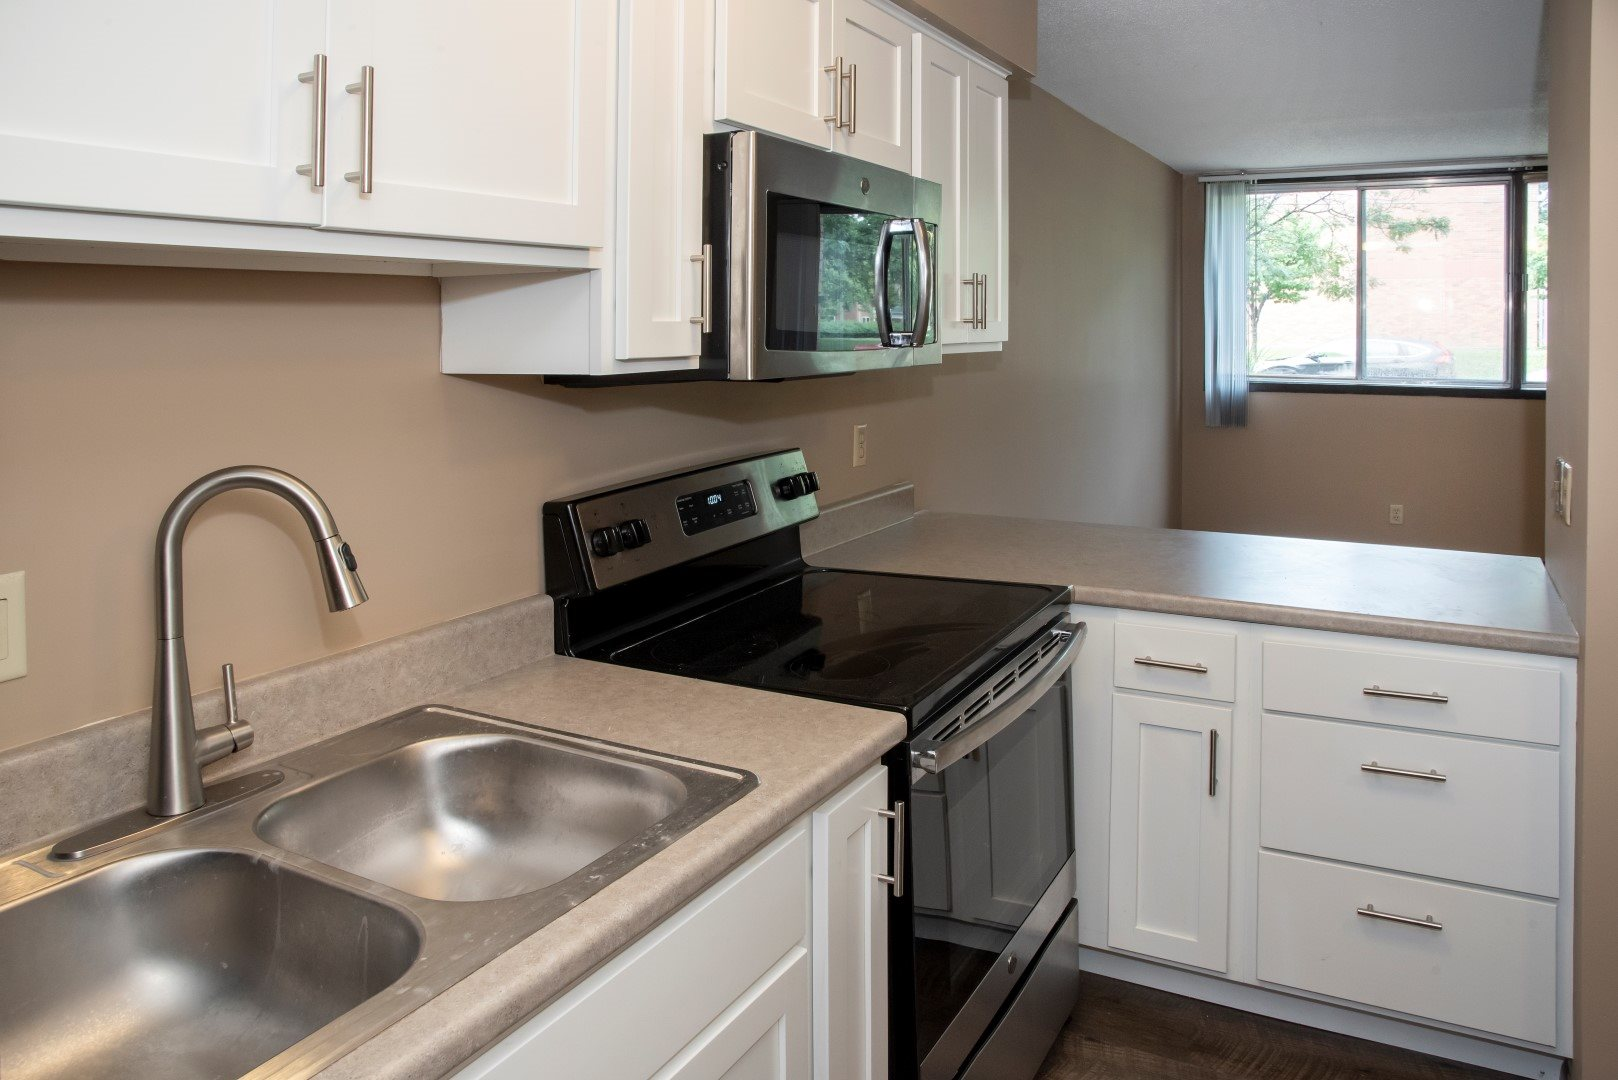 studio apartment, updated kitchen with bar seating